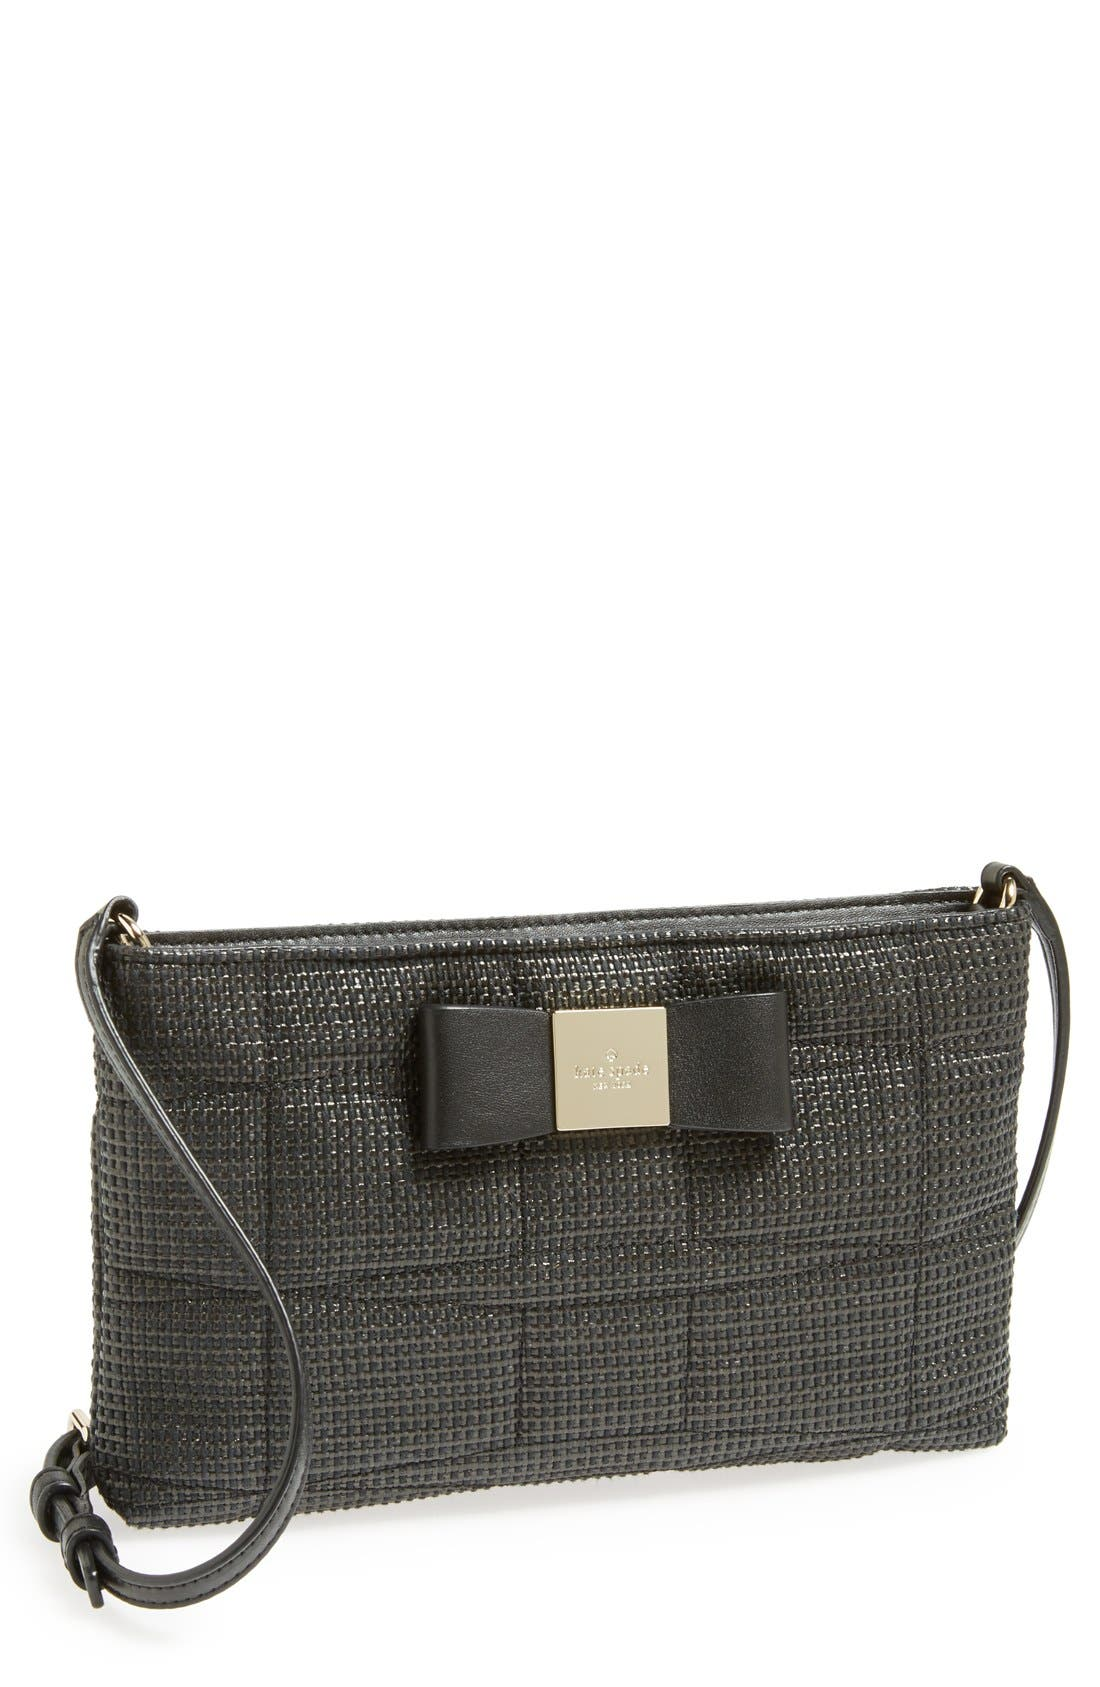 Alternate Image 1 Selected - kate spade new york 'veranda place - maree' crossbody